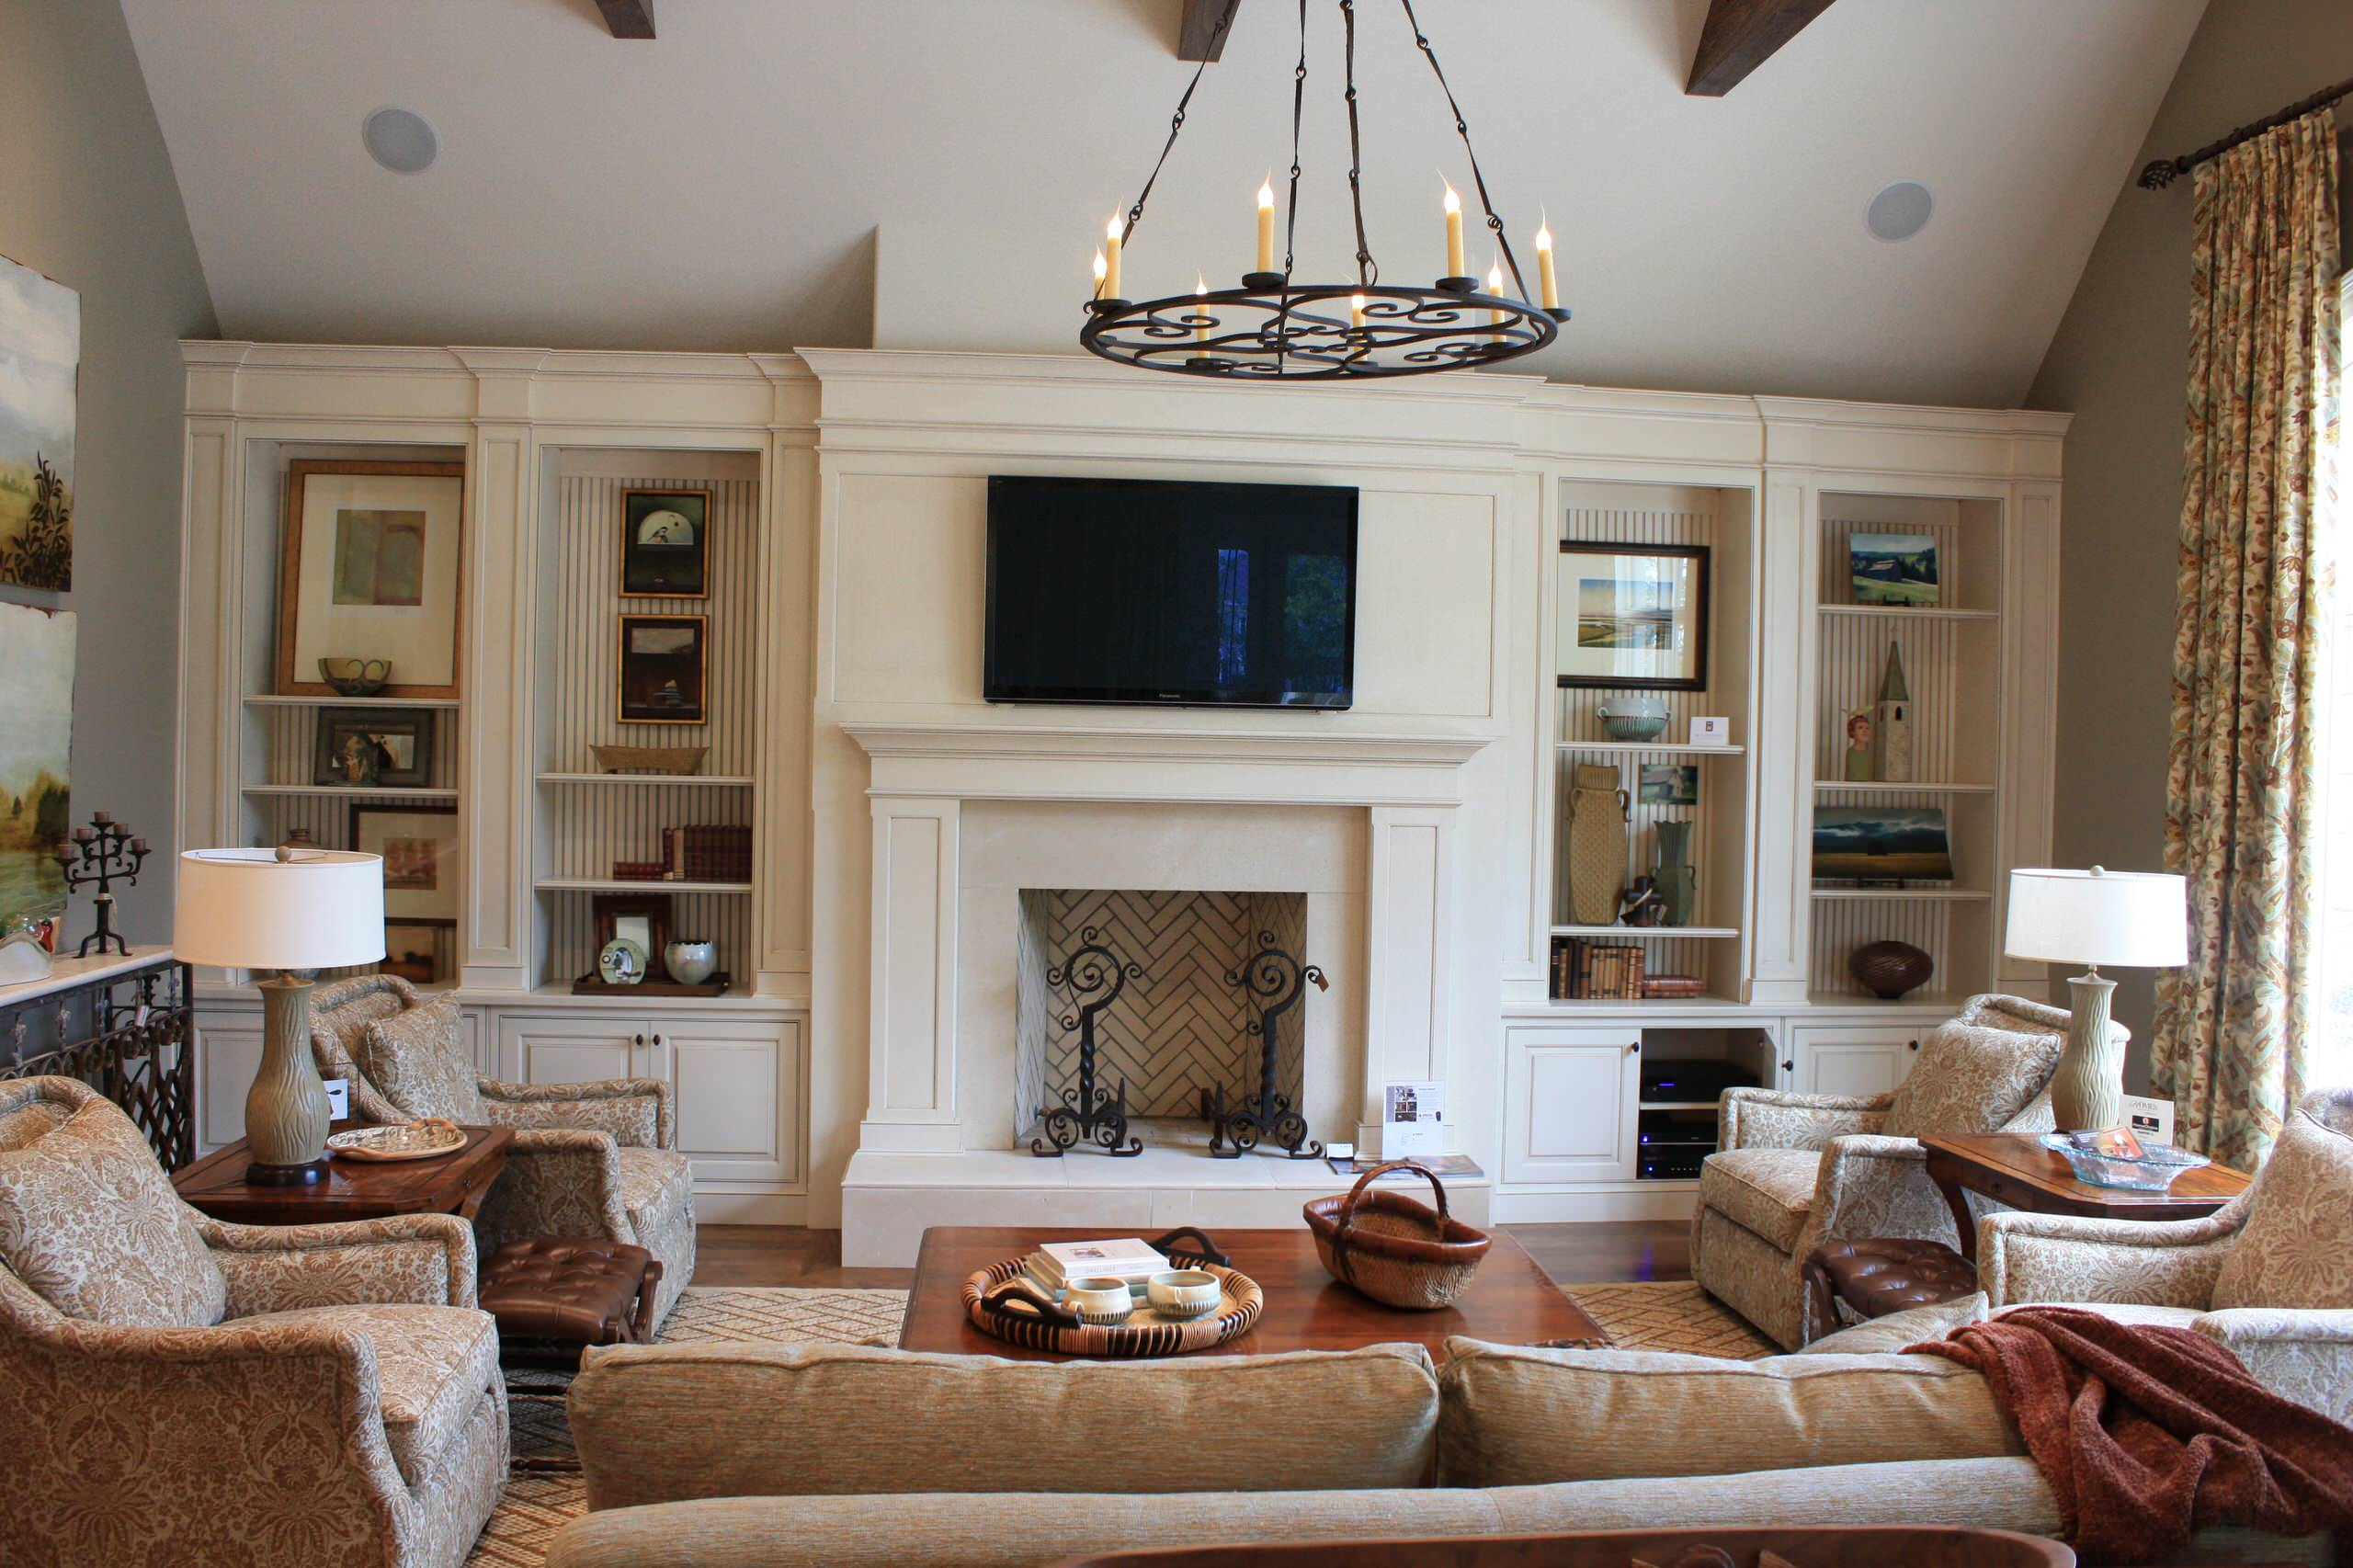 Family Room Built Ins Traditional, Living Room Built Ins Ideas